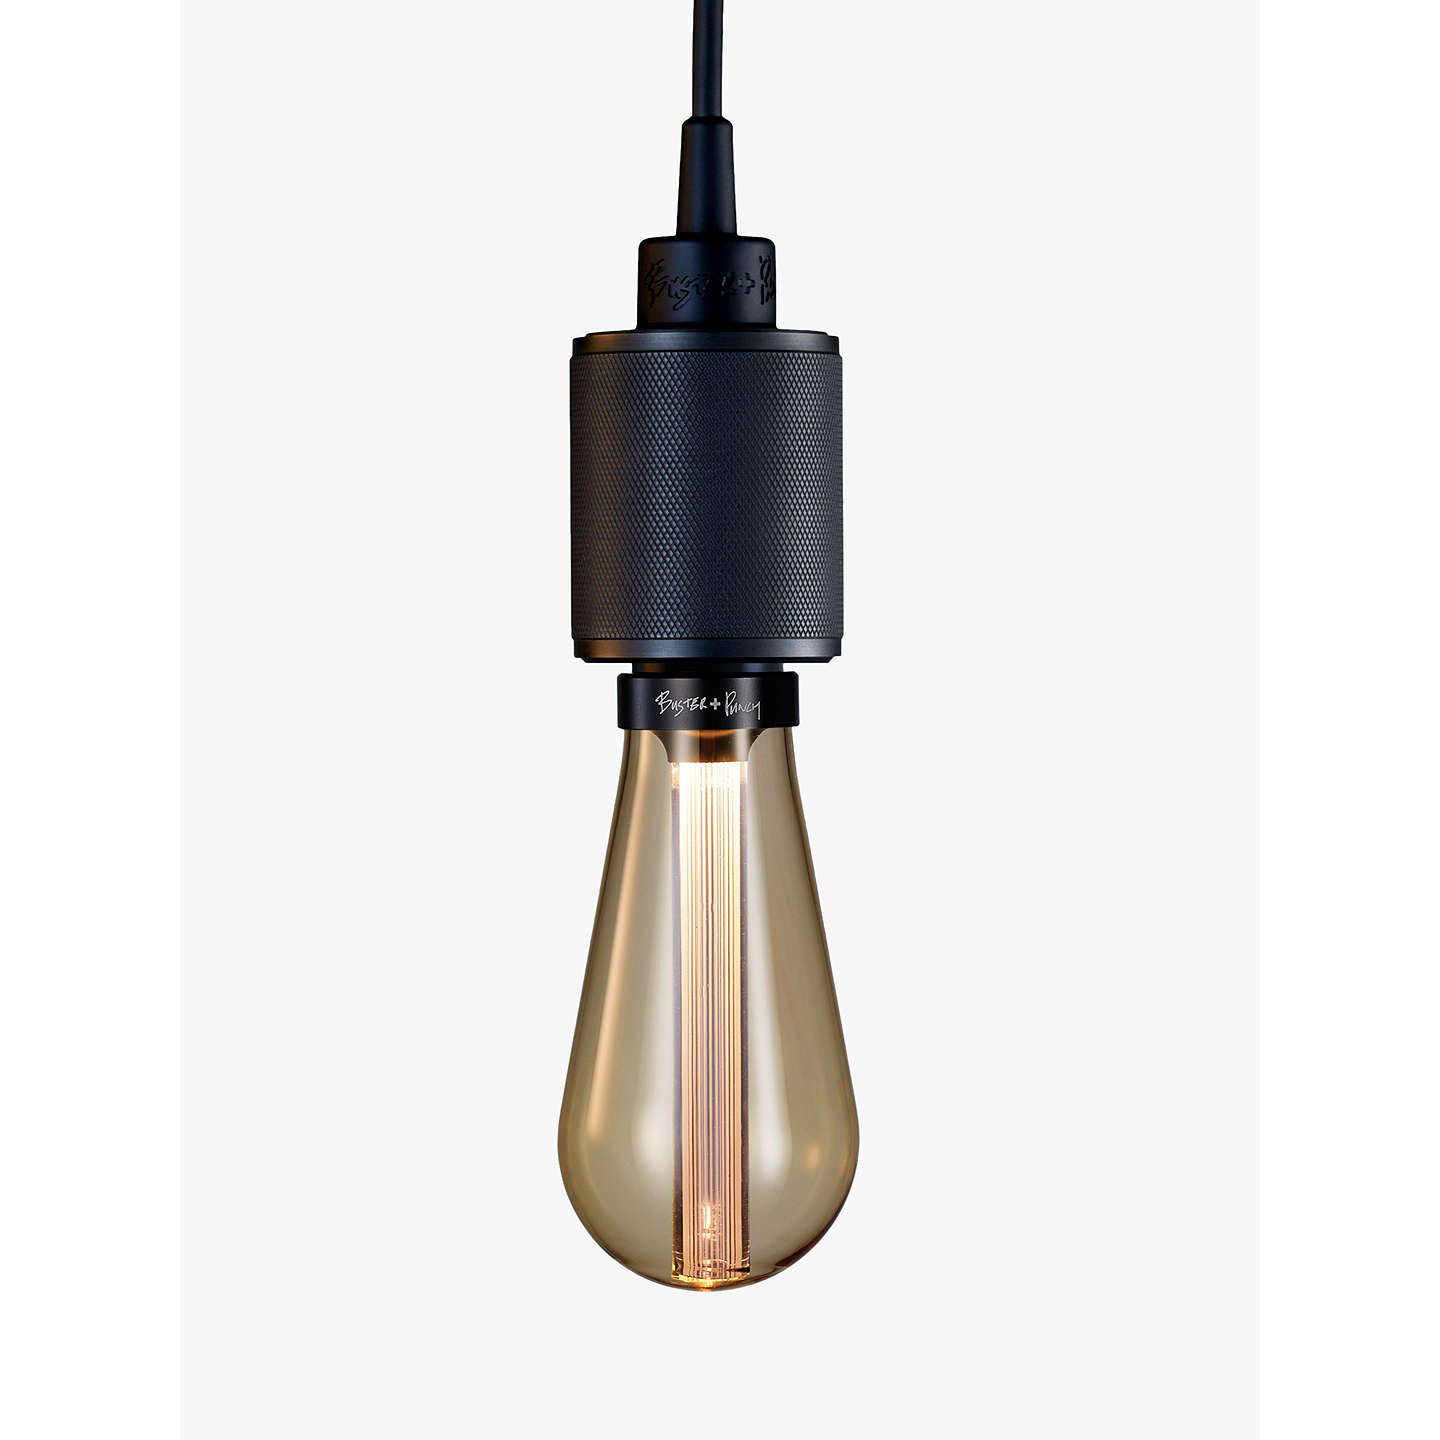 Buster punch heavy metal es pendant cord ceiling light at john lewis buybuster punch heavy metal es pendant cord ceiling light smoked bronze online at johnlewis aloadofball Image collections